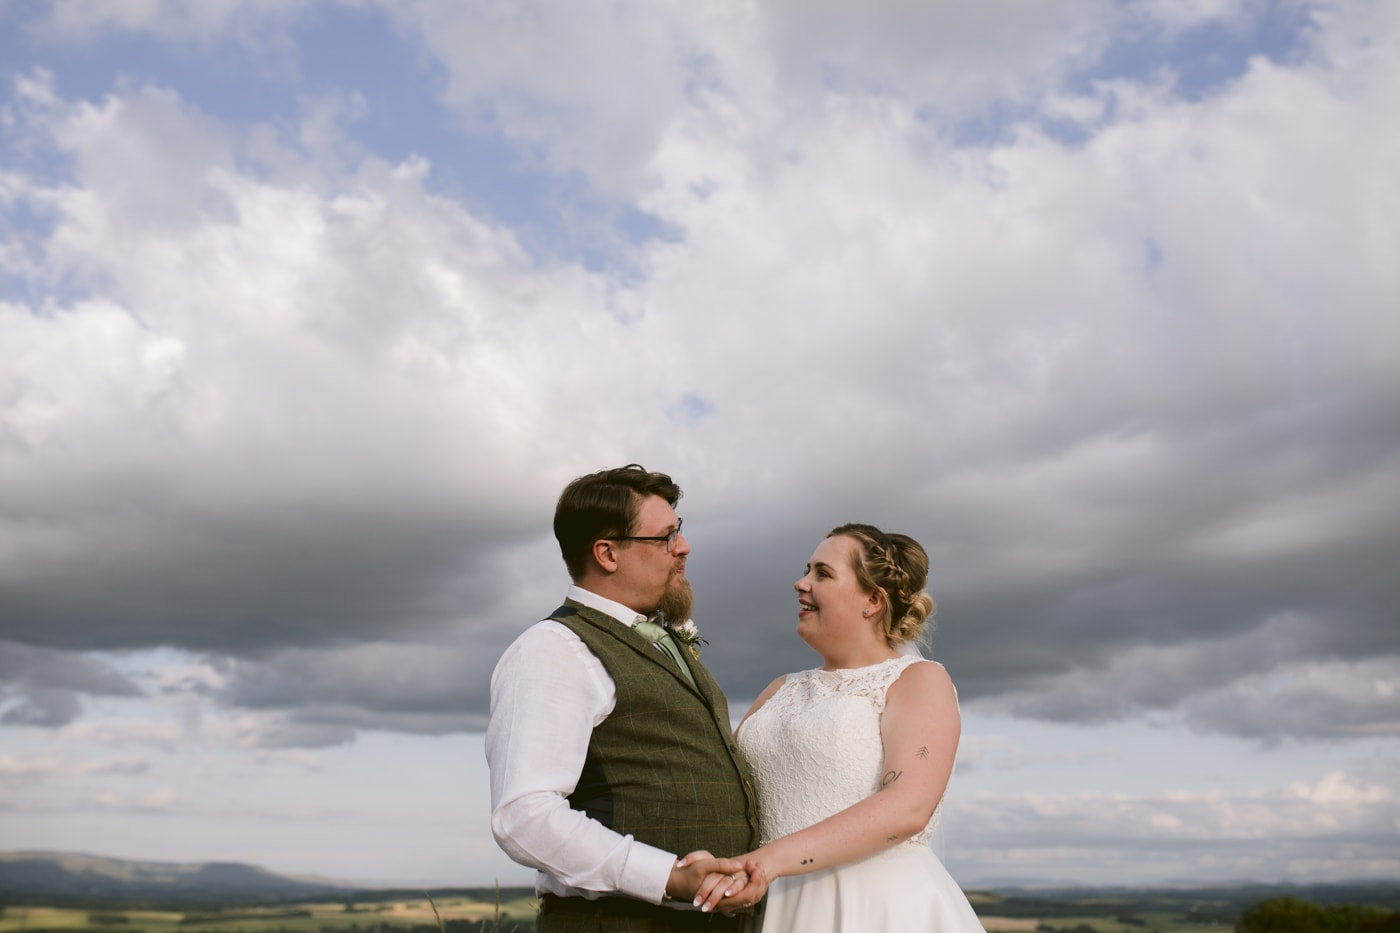 Bride and Groom Embraces Together at Roundthorn Country House